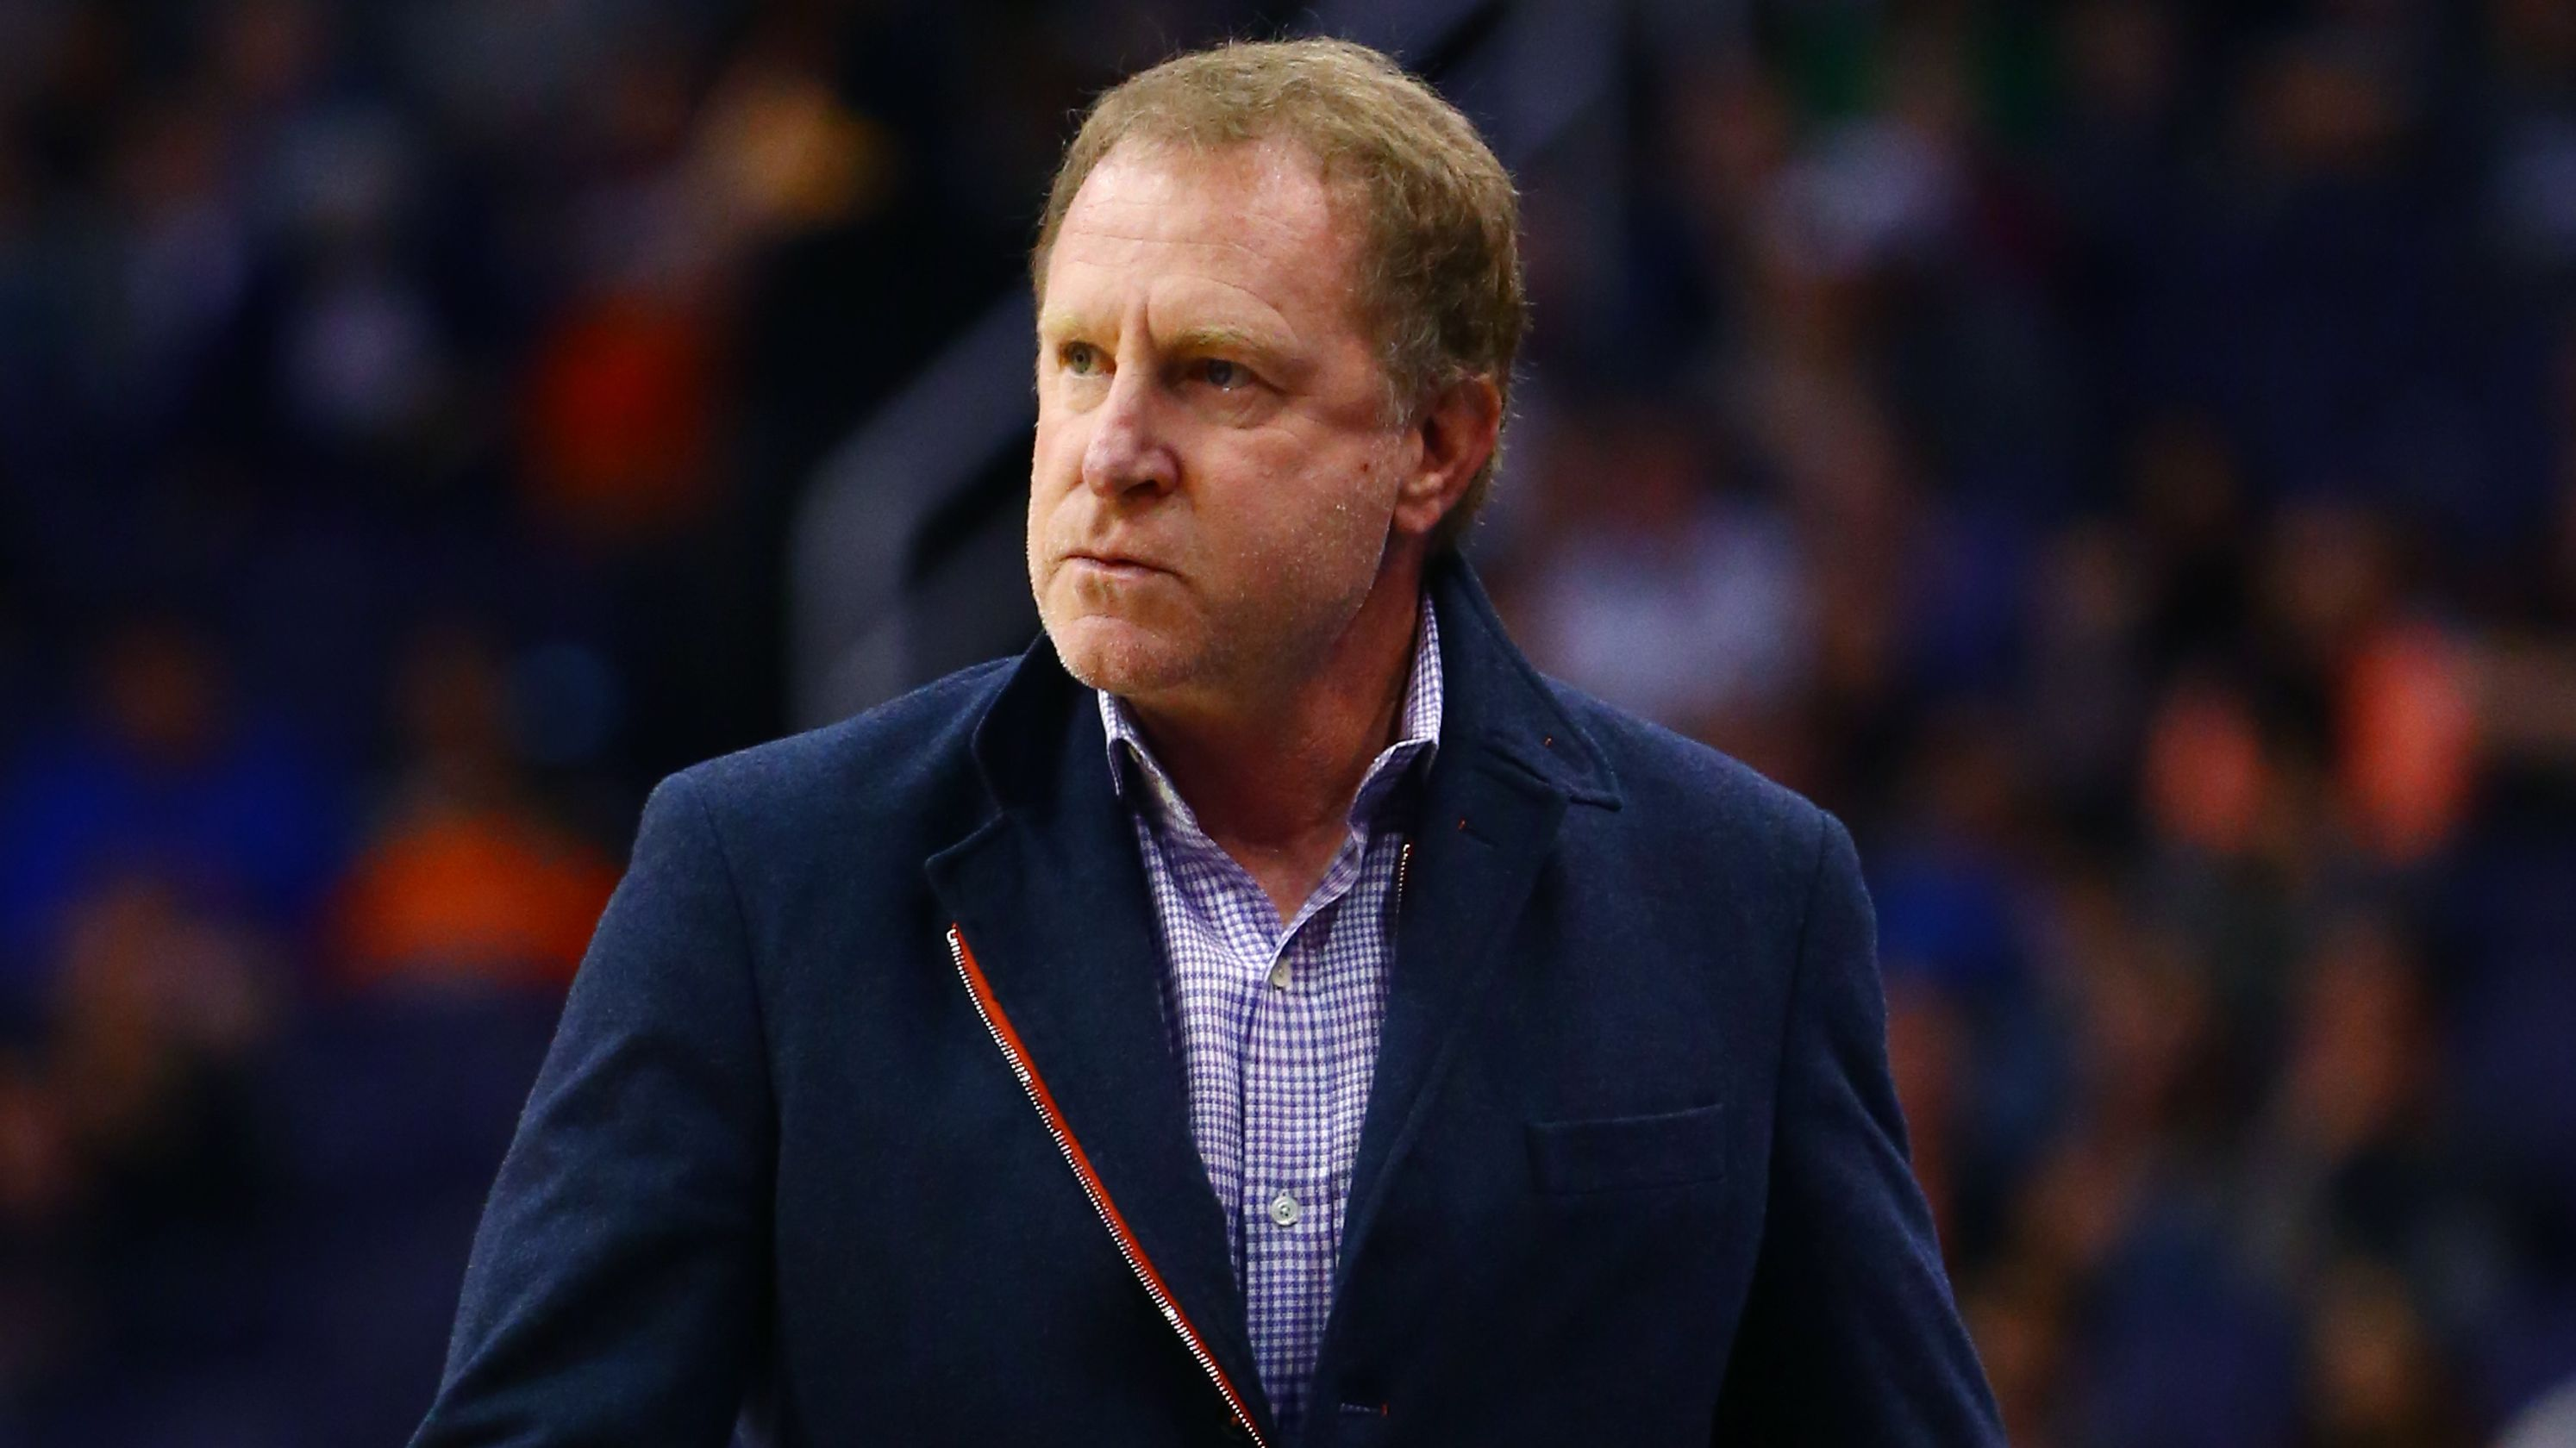 Column: Phoenix should call Suns owner Robert Sarver's bluff about moving team